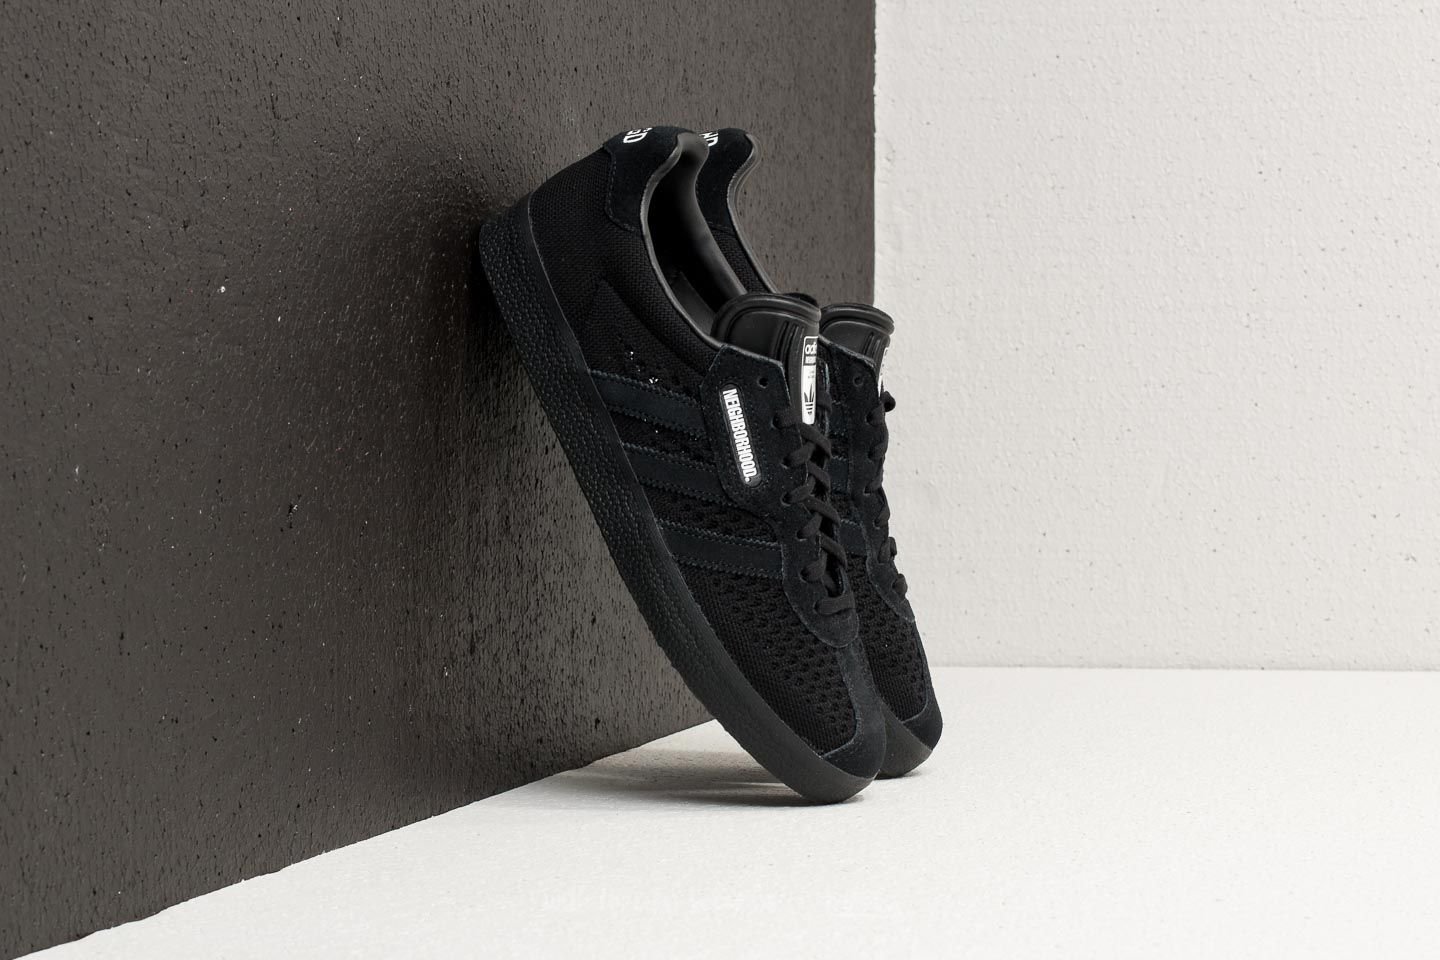 separation shoes 70bcd fca37 adidas x Neighborhood Gazelle Super Core Black Core Black  Footshop